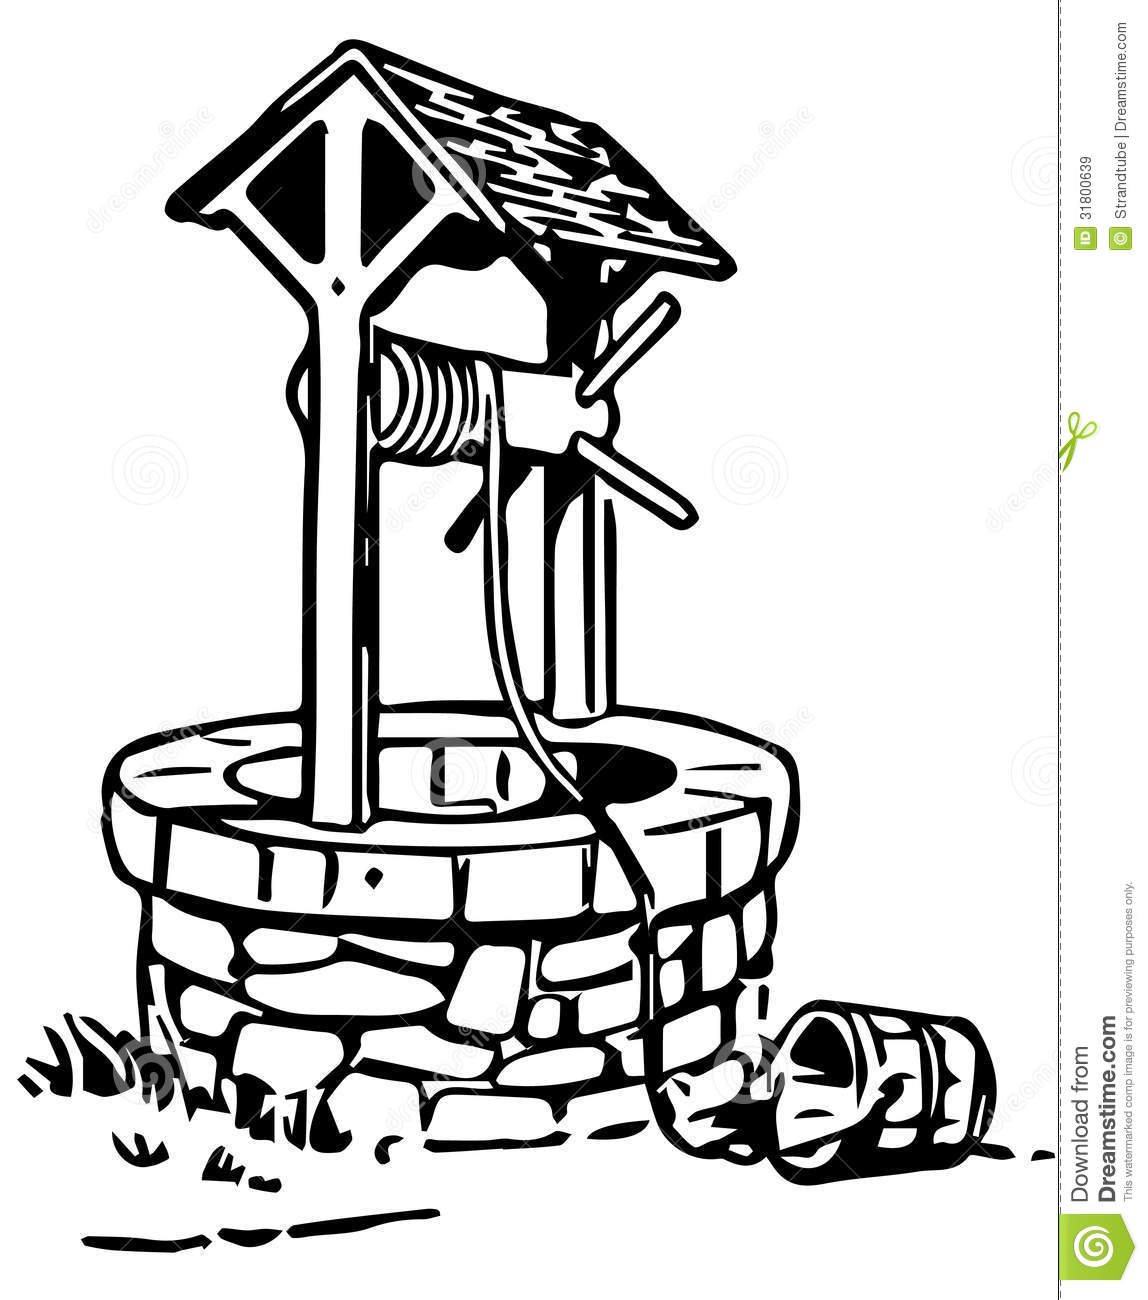 Wishing Well clipart water well Pinterest of image Explore Well